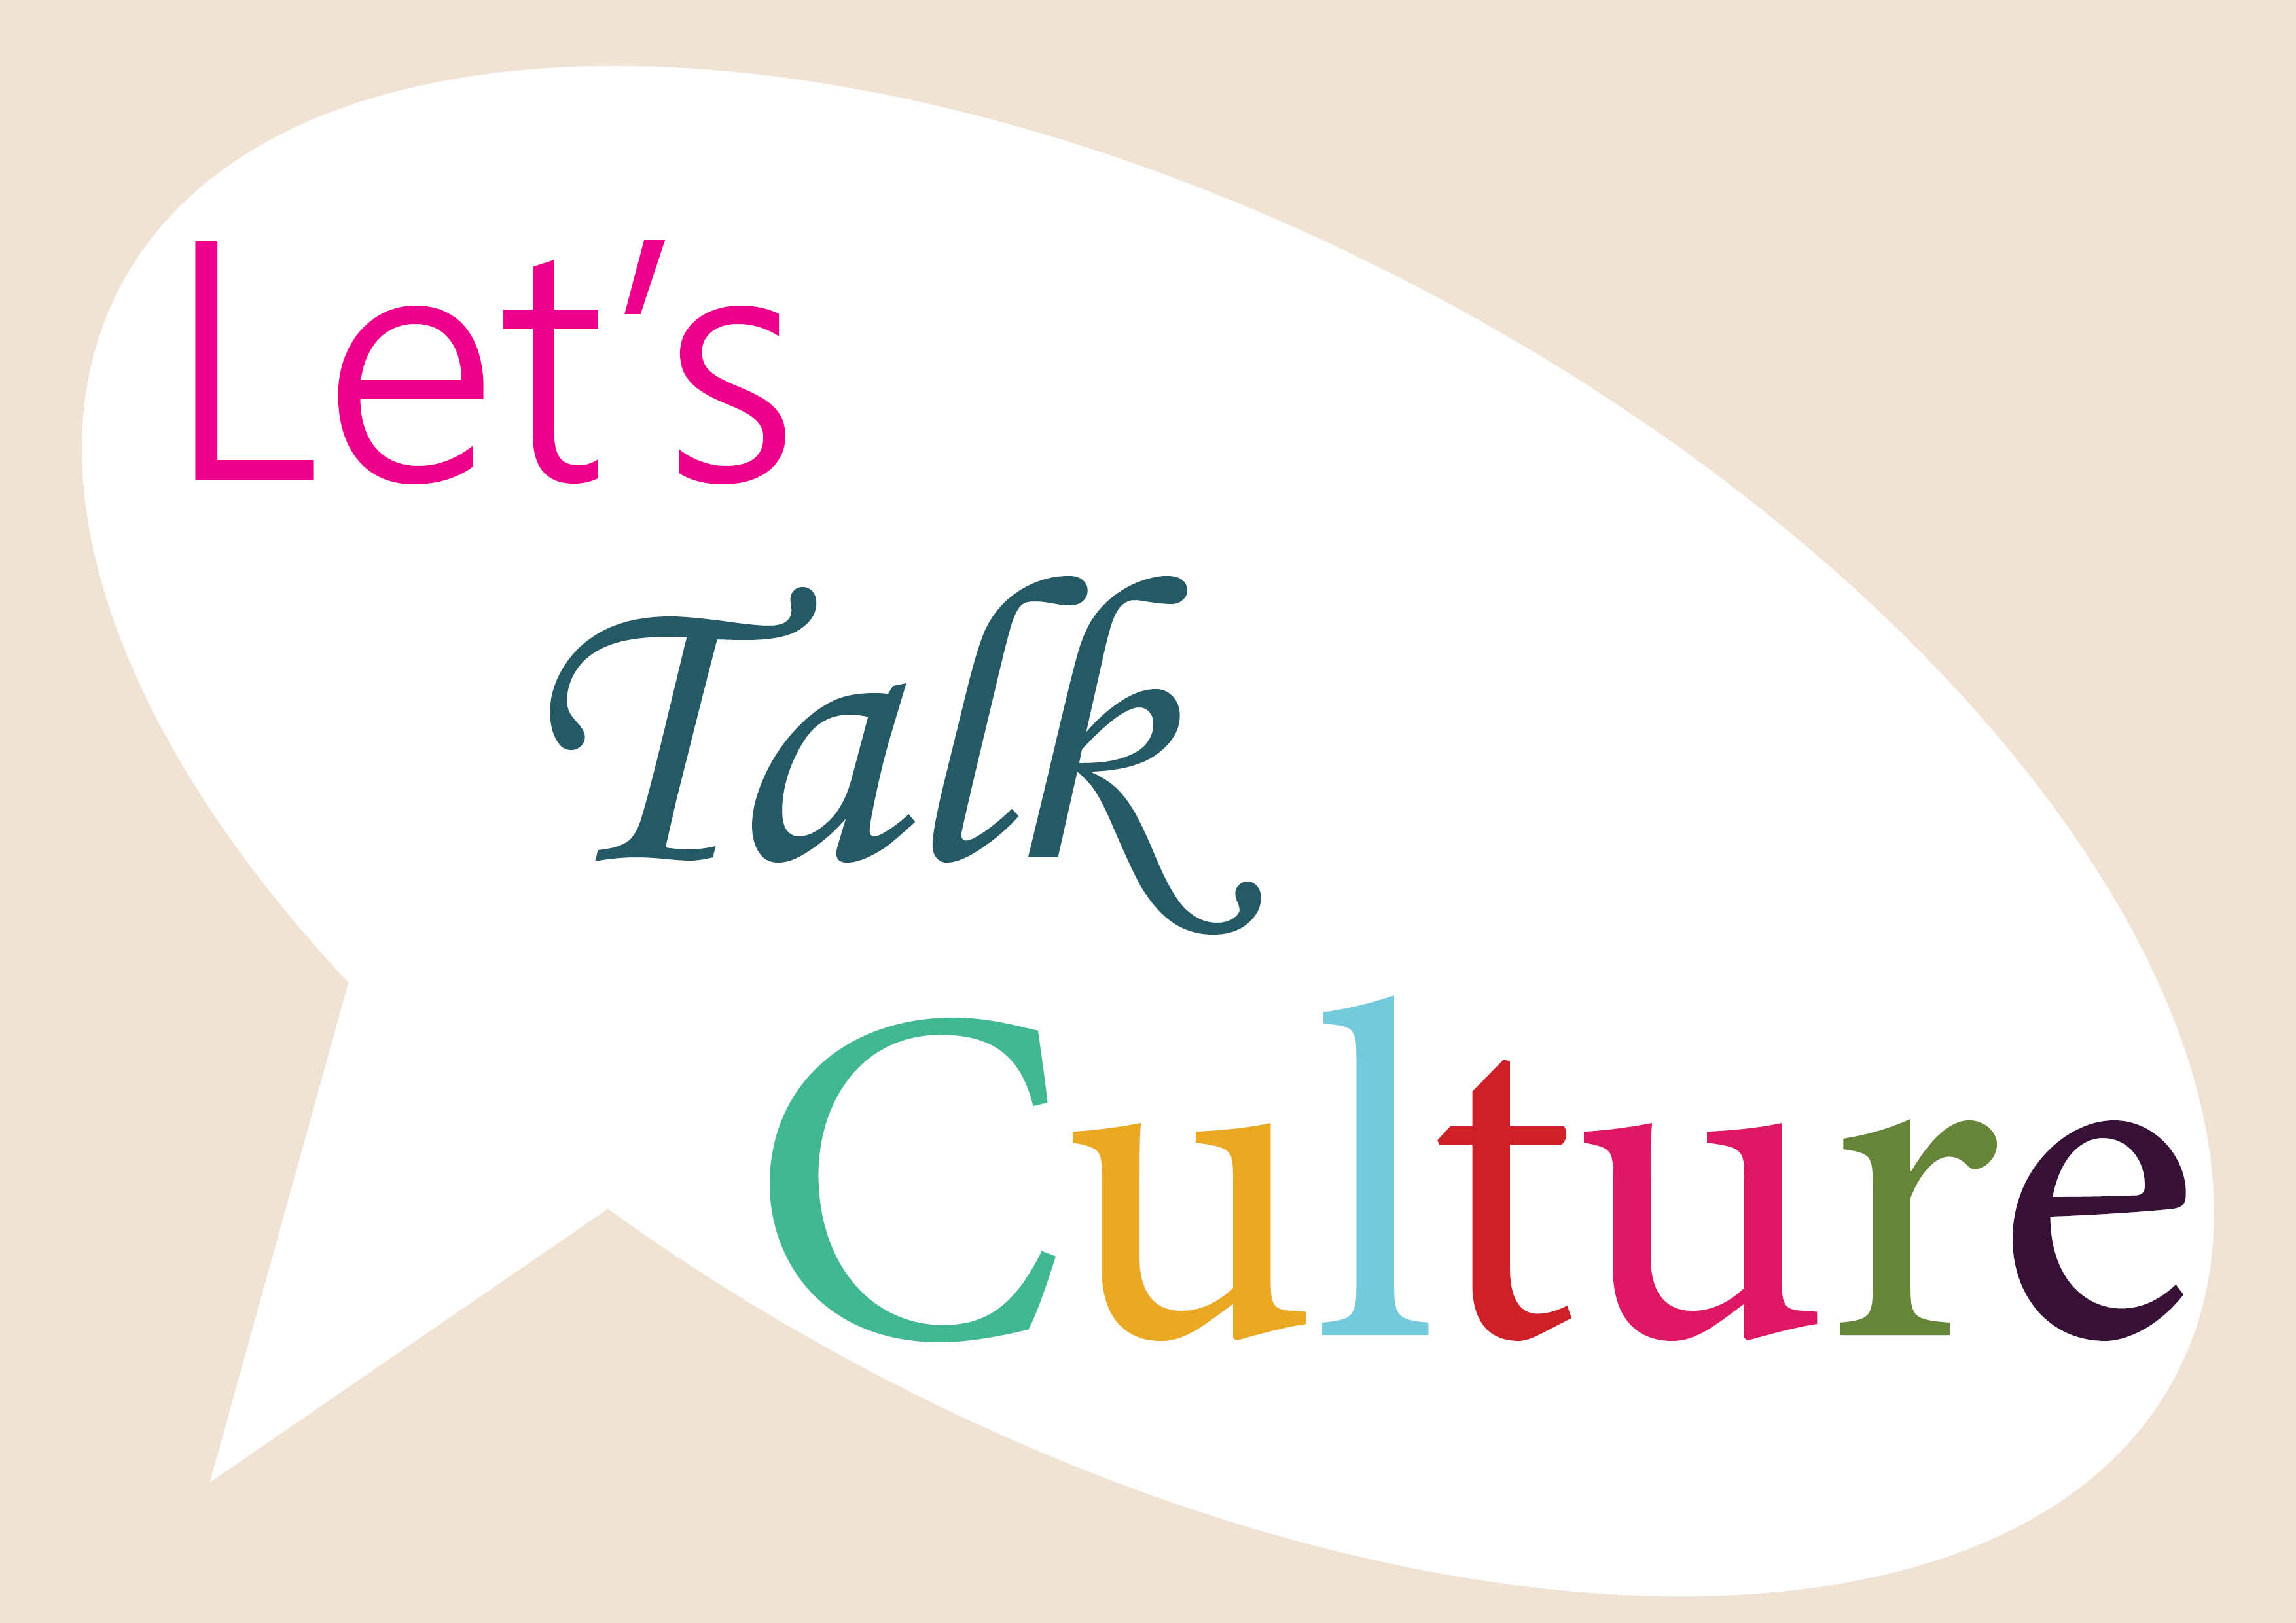 A speech bubble with culture in it